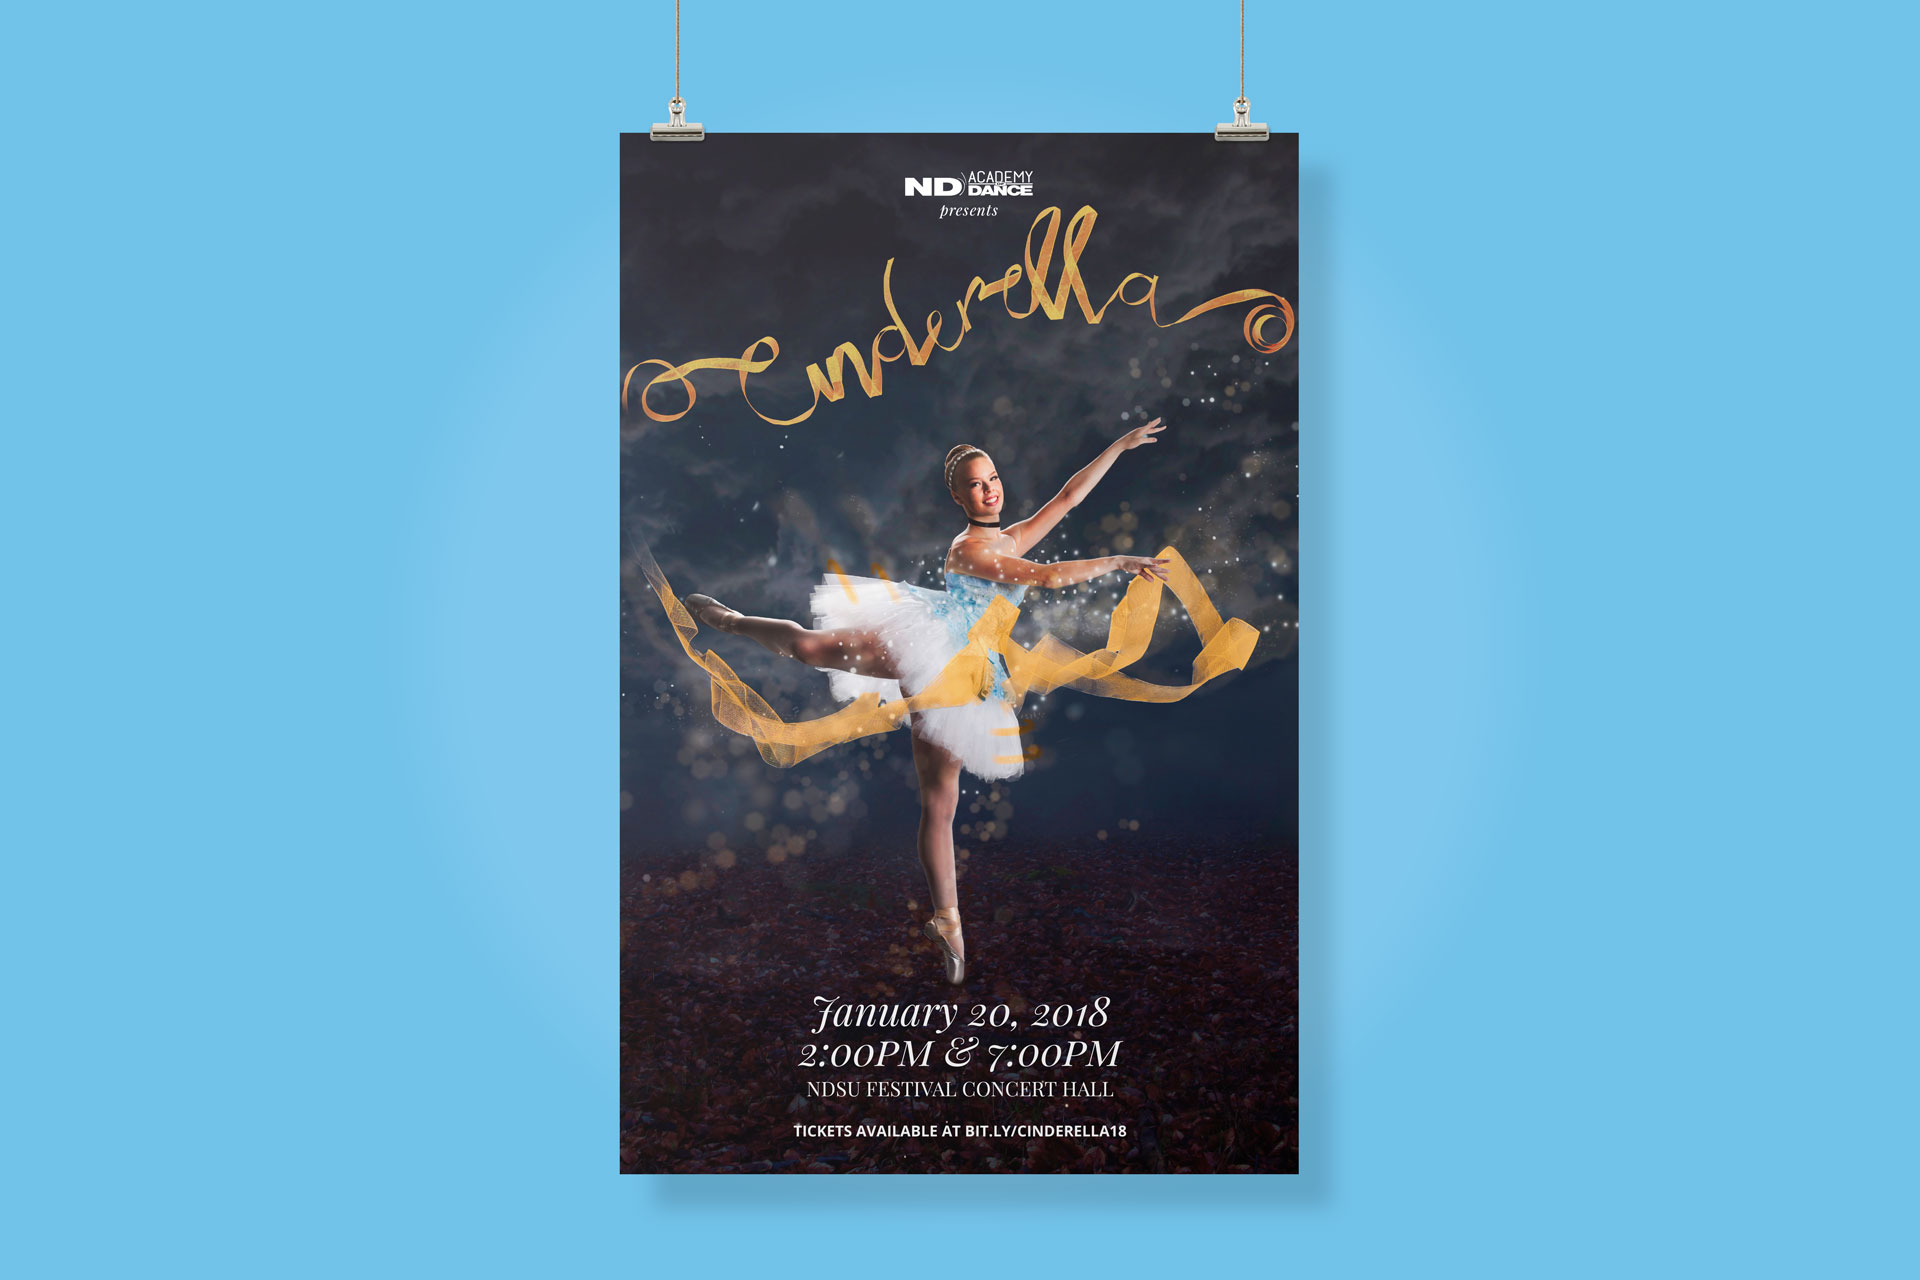 Blue background with poster of ballerina in short blue costume and Cinderella written in gold ribbon in foreground